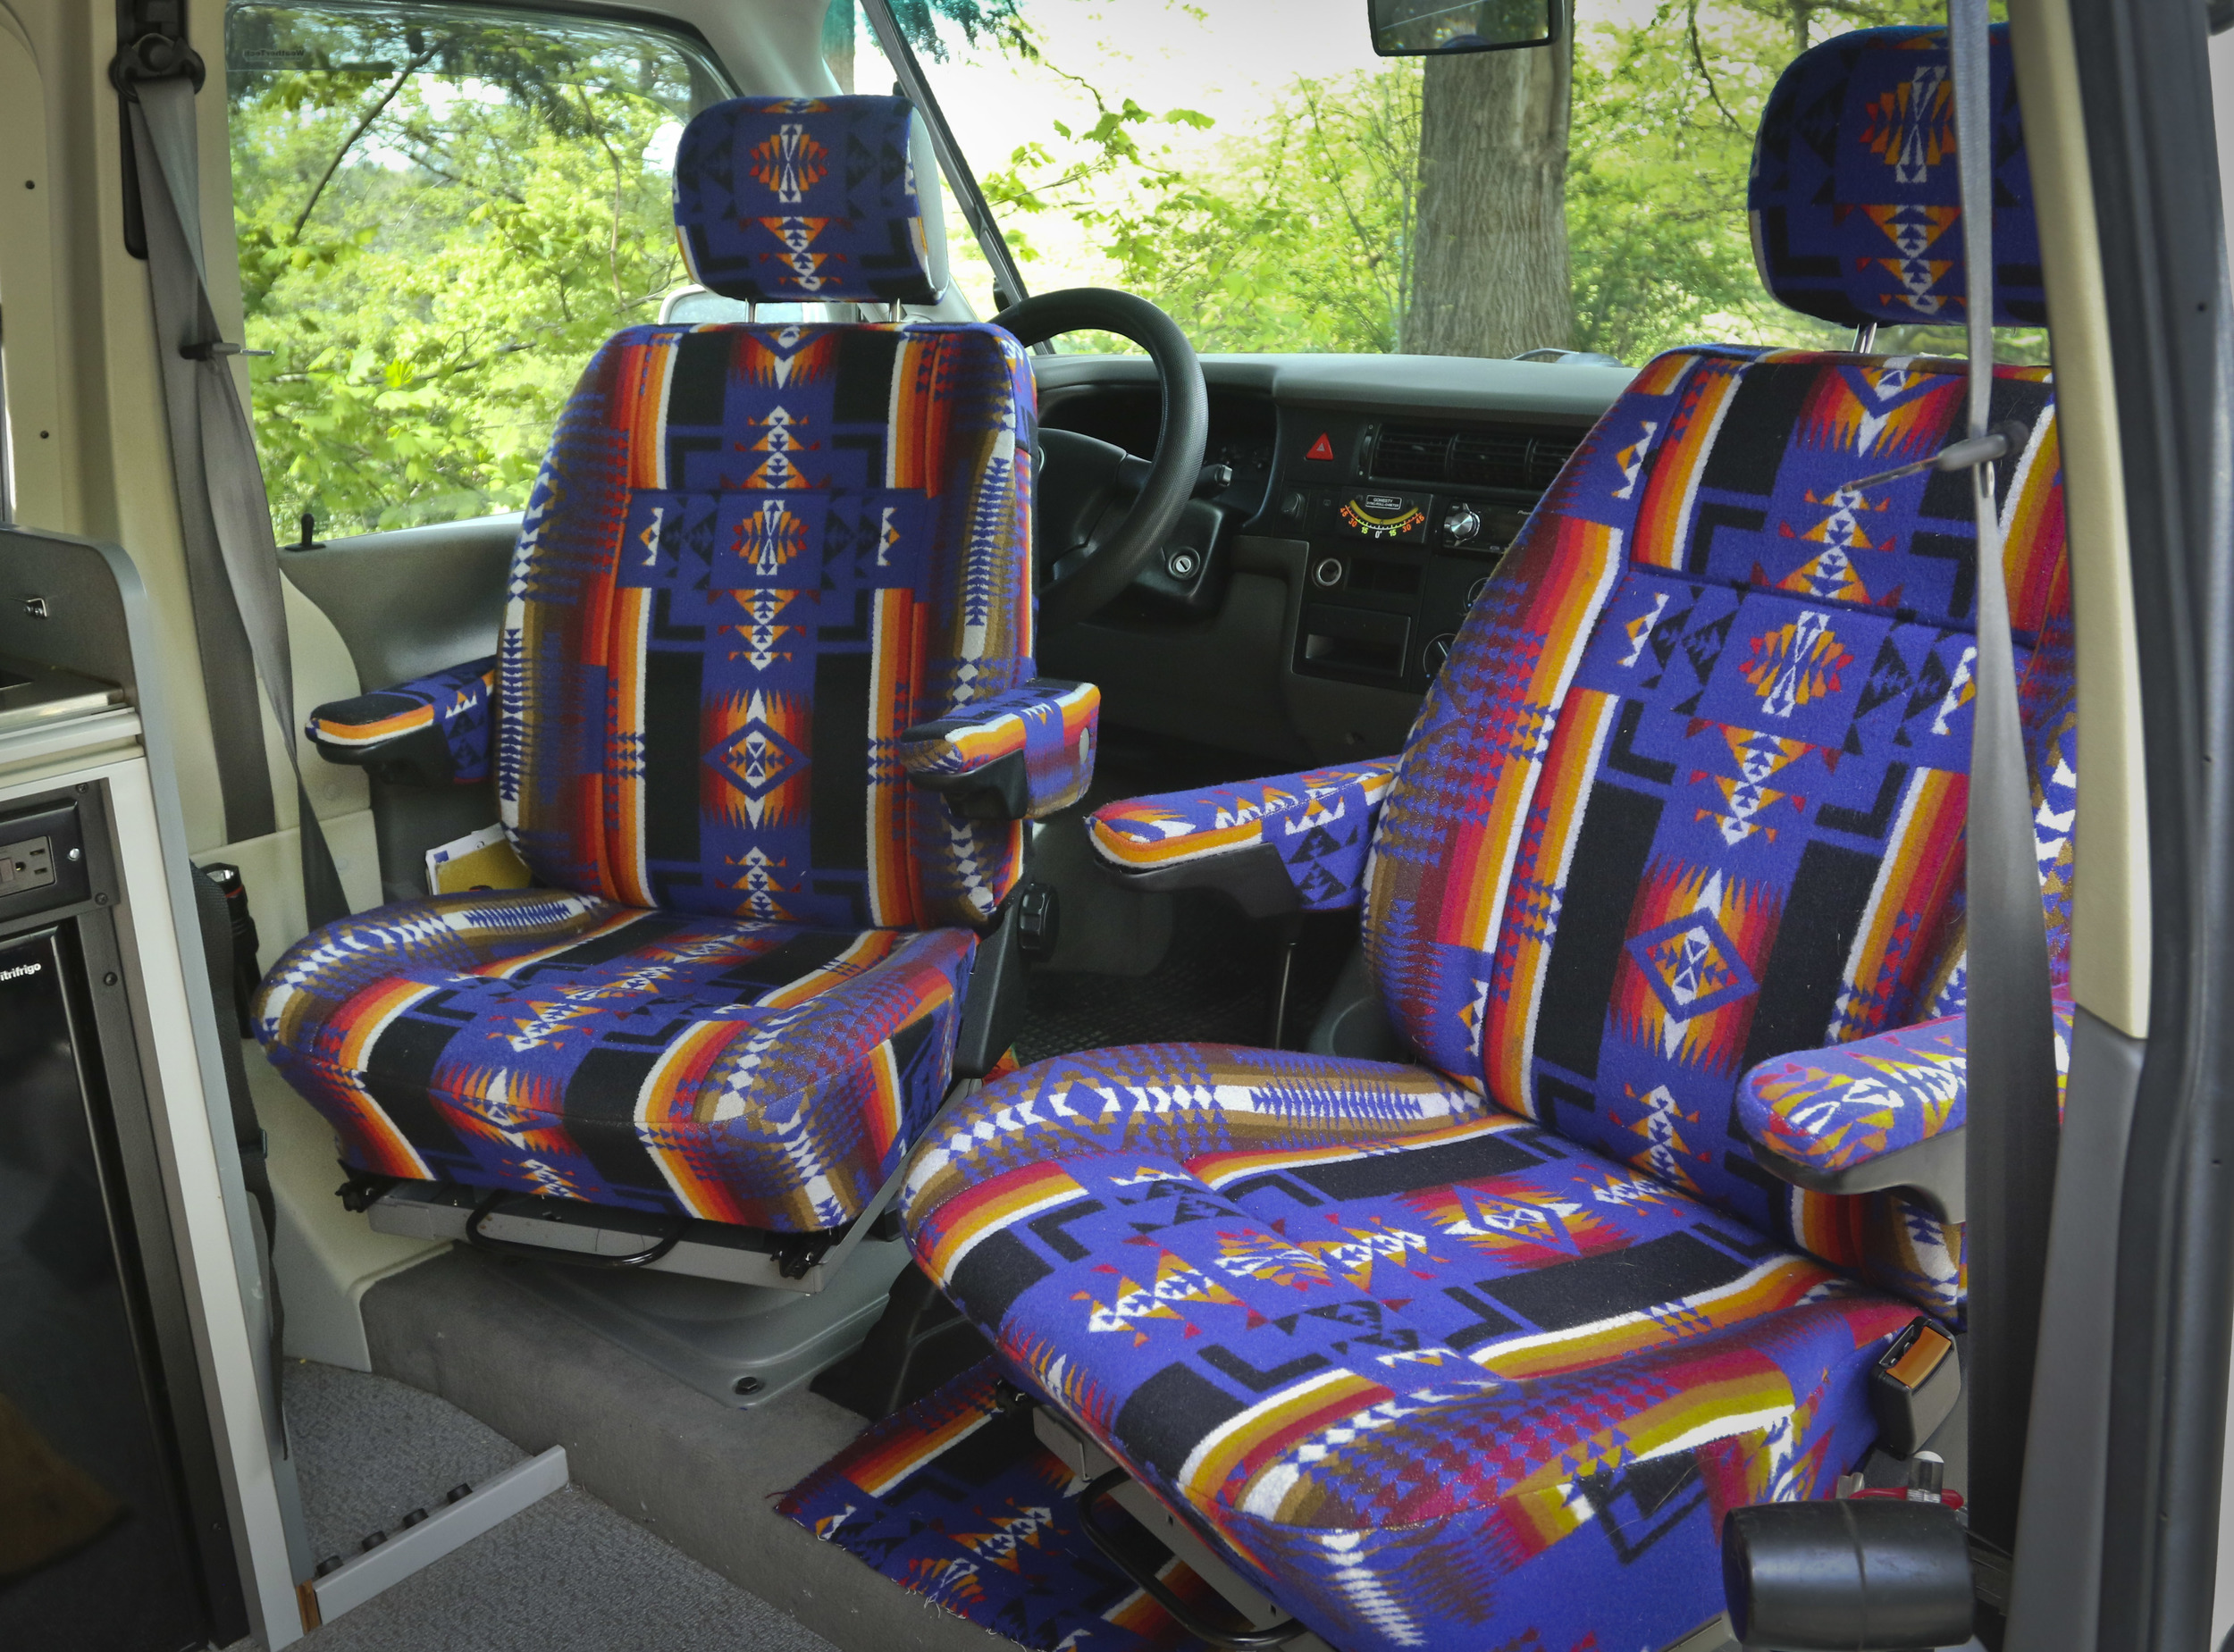 The captains chairs fully rotate, allowing more people to be in the van and create a more livable space.